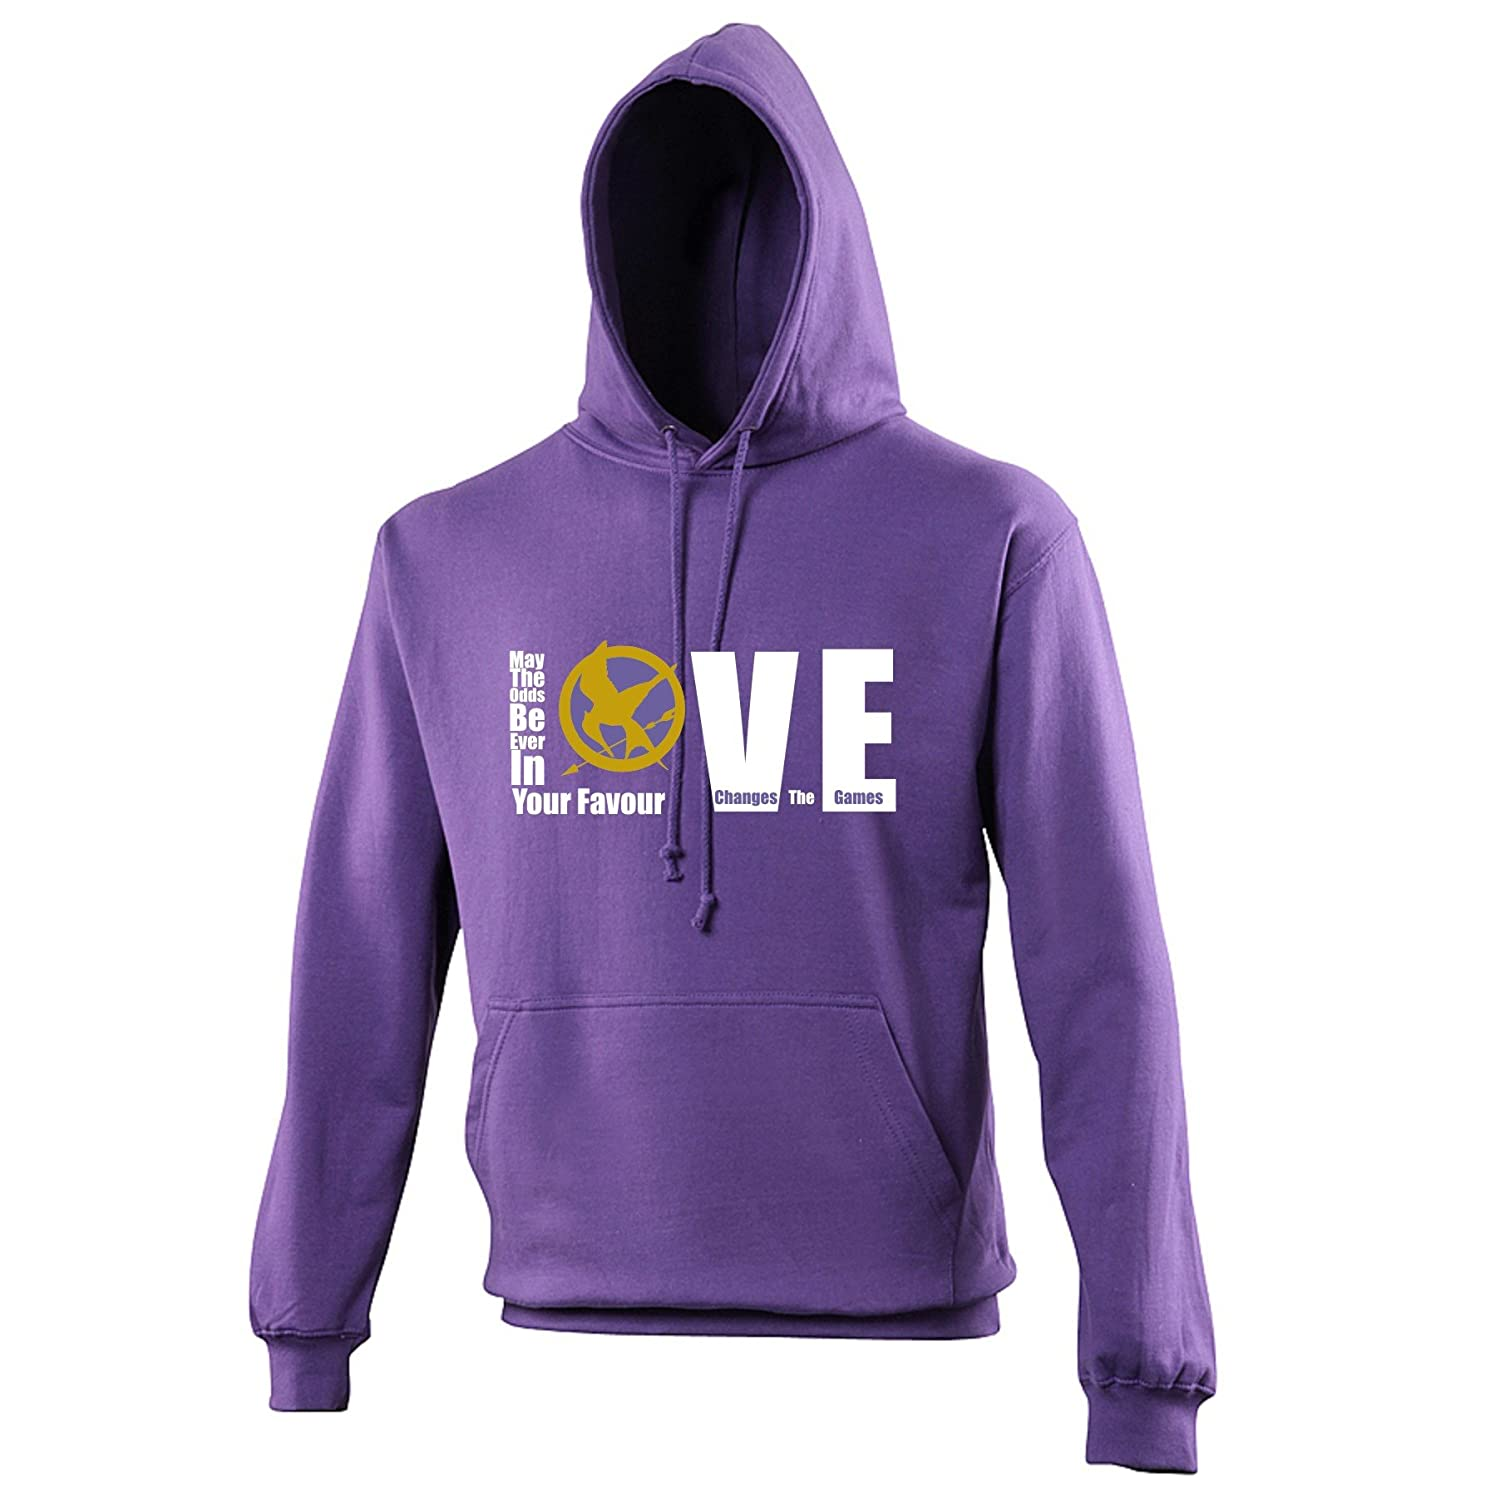 Love Changes The Games - May The Odds Be Ever In Your Favour - The Hunger  Games Hoodie